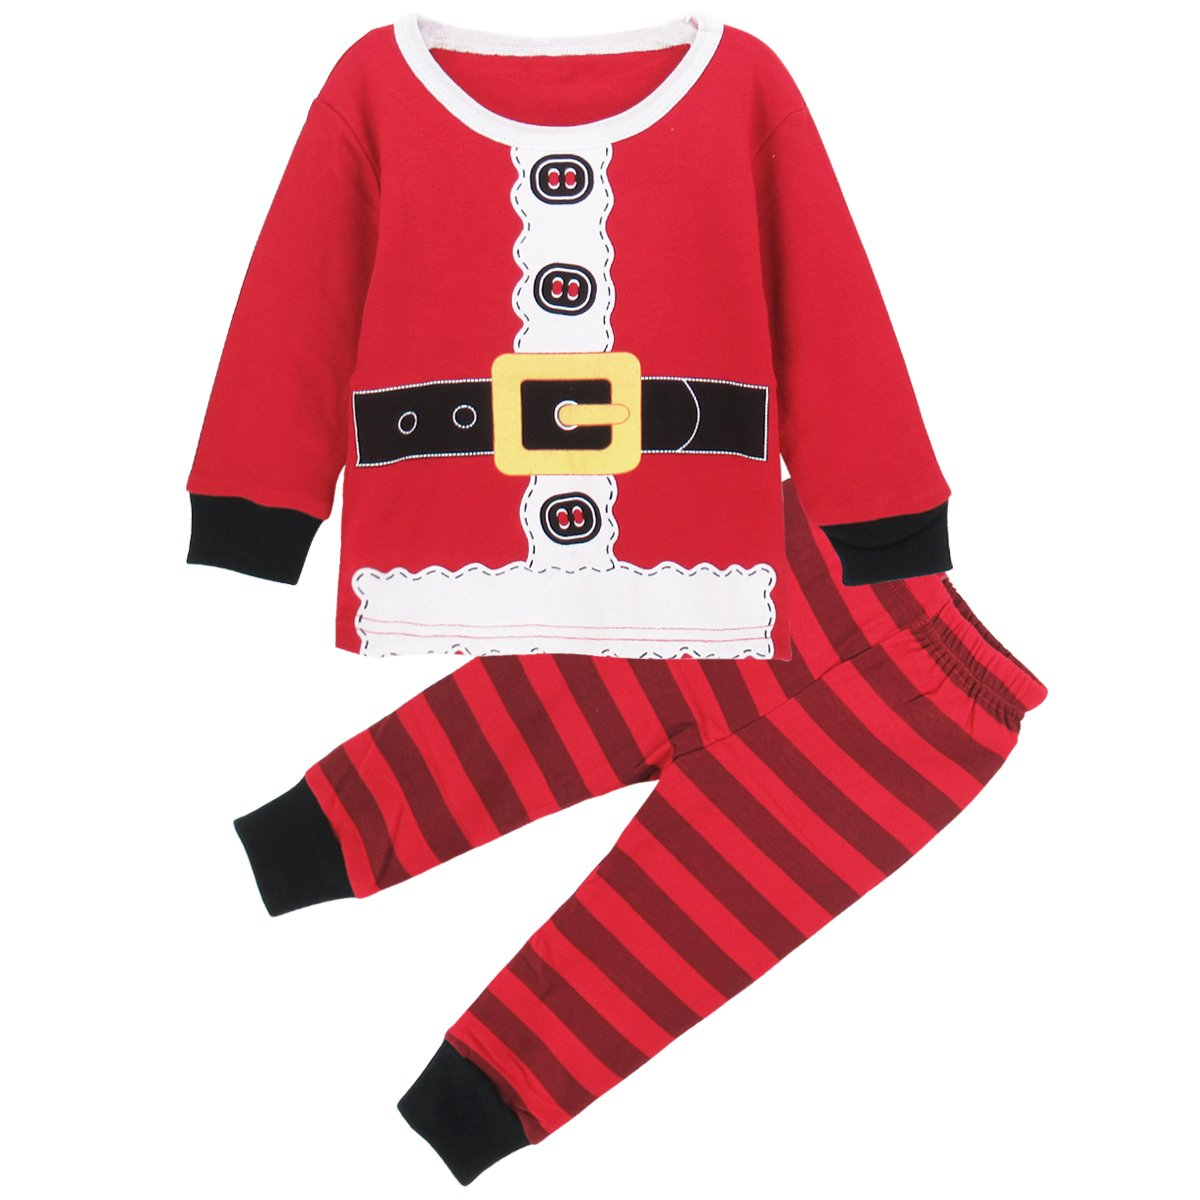 A& J Design Baby Boy's Infant Santa Claus Christmas Pajamas 2 Piece Set